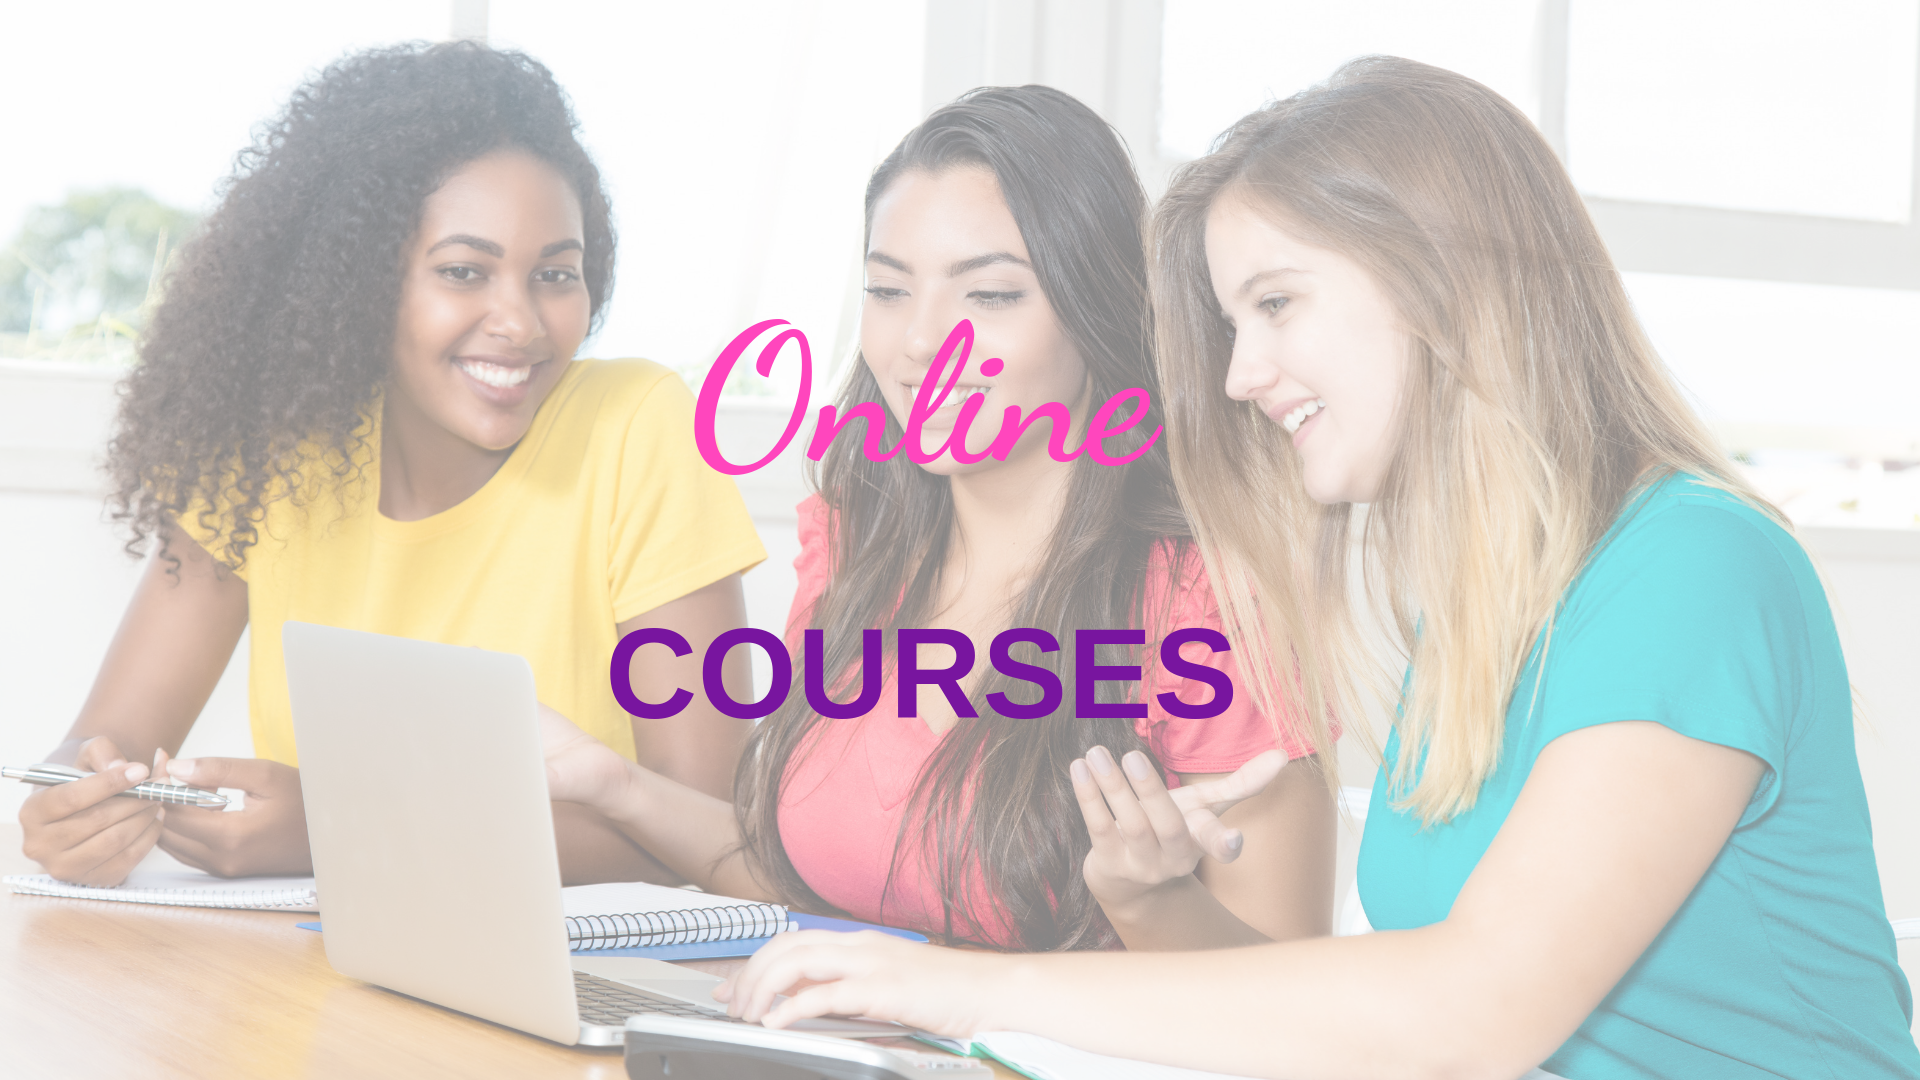 Black, Latina and White young women looking at a laptop for an online course.